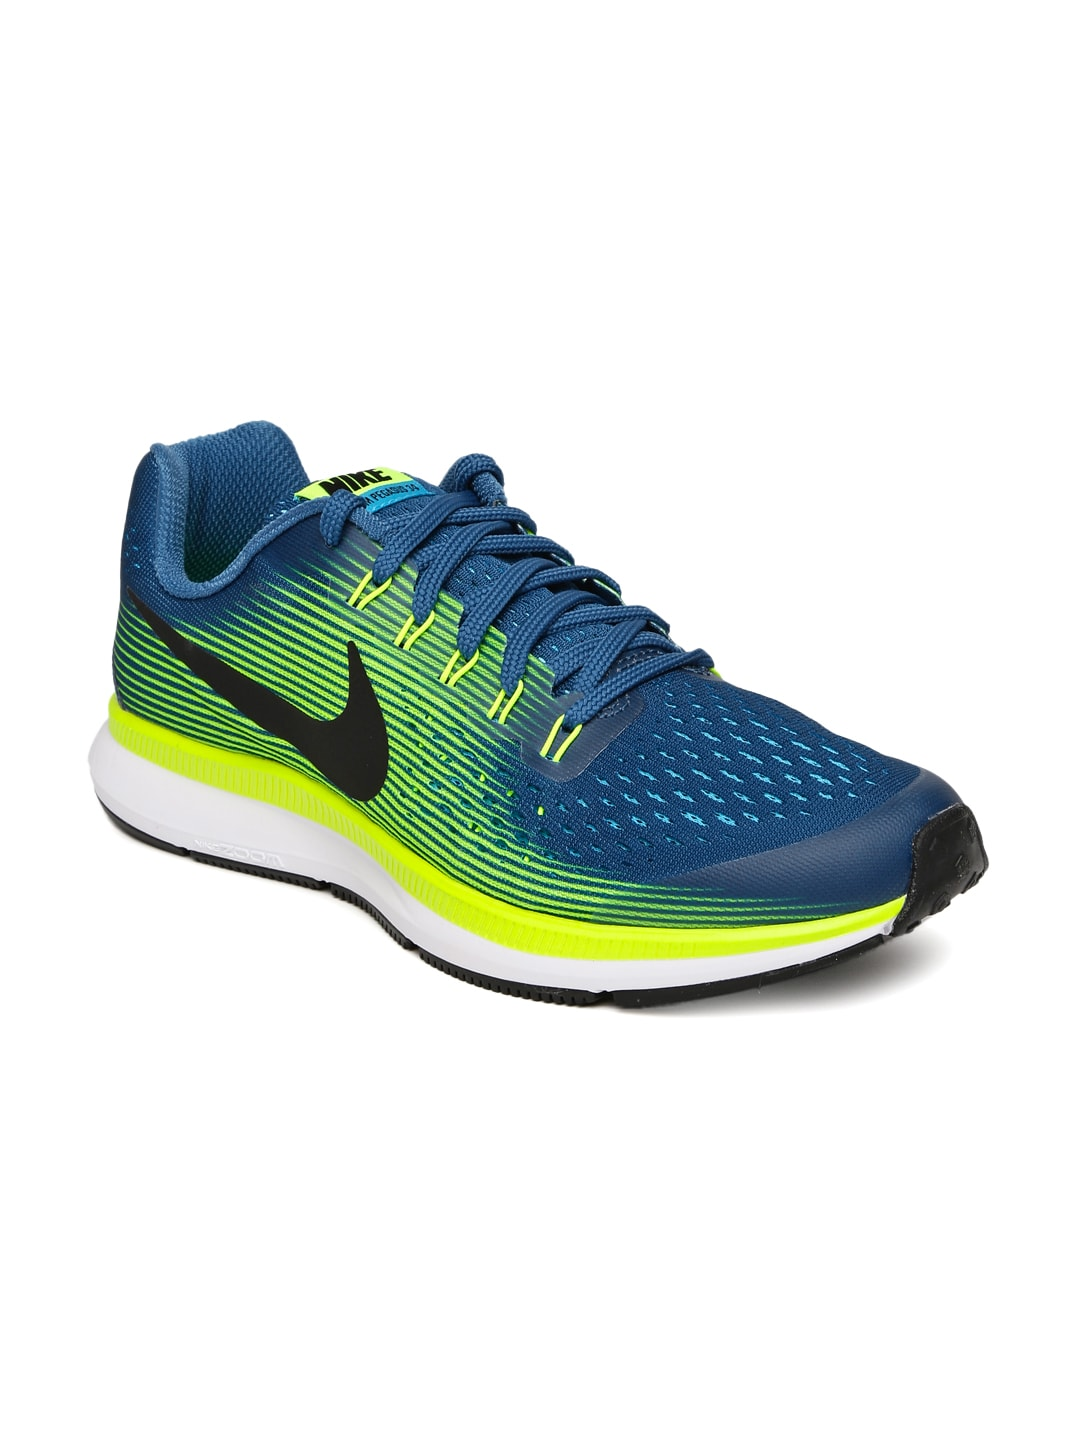 607c891b7d67 ... discount code for buy nike boys olive green zoom pegasus 34 running  shoes sports f883b a33ec